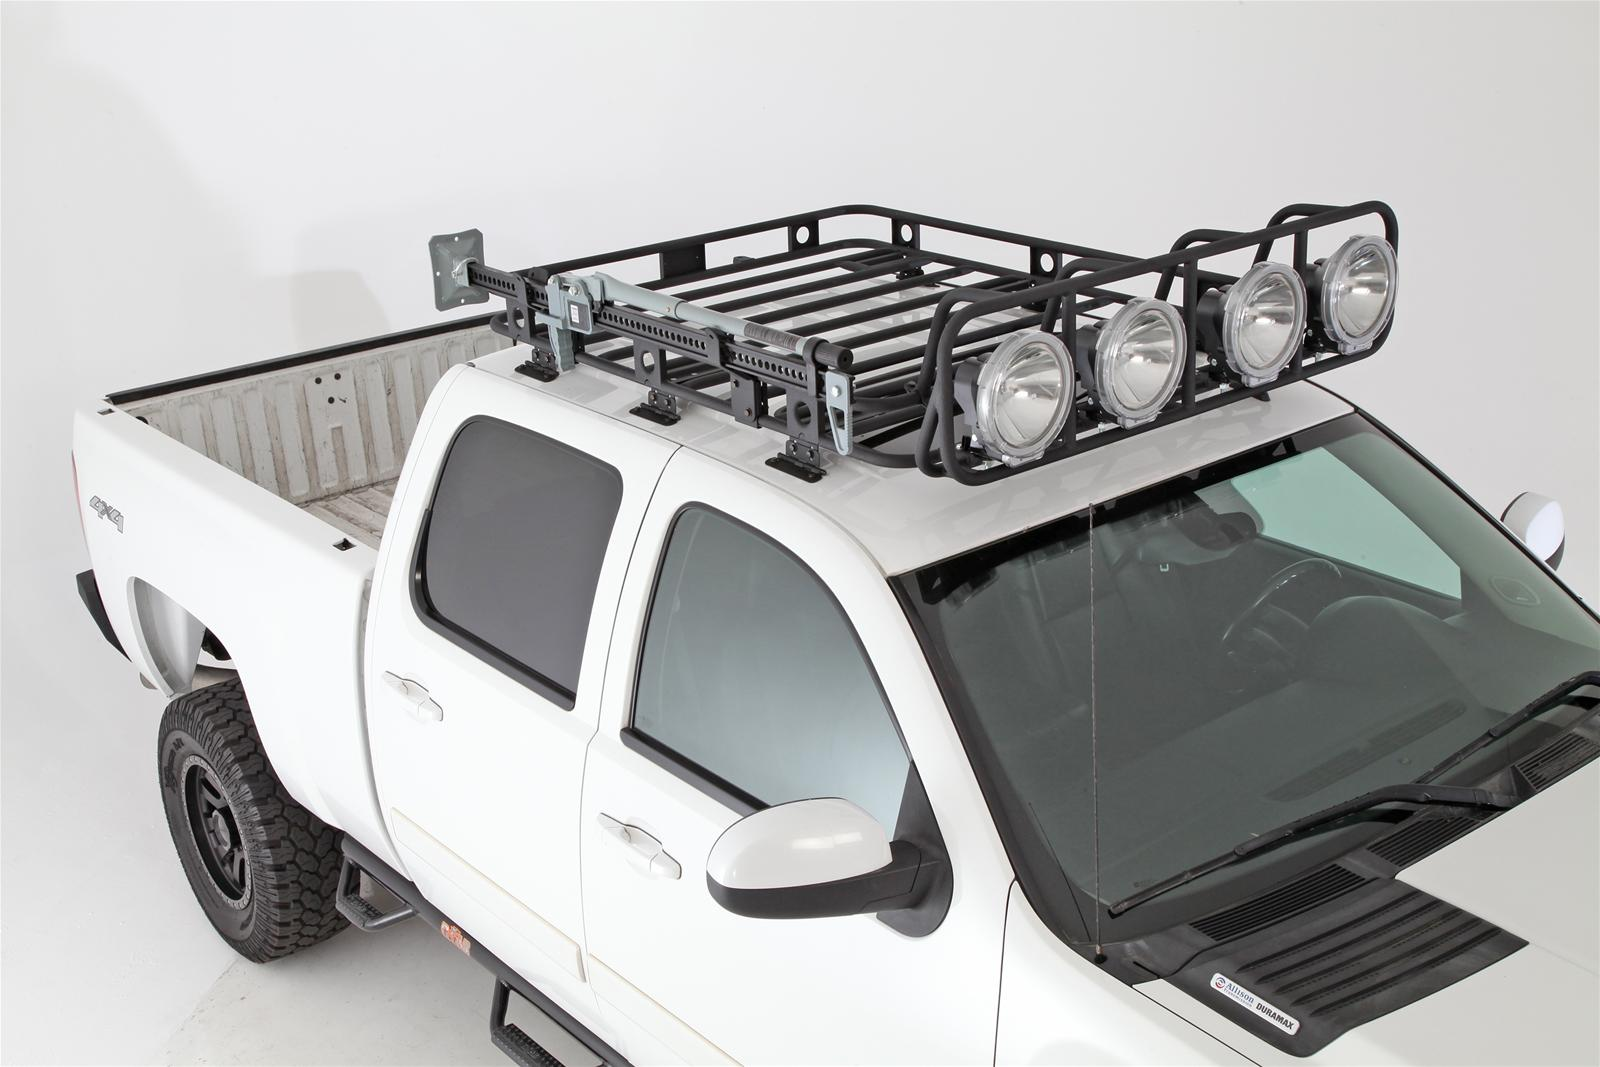 Smittybilt Defender Roof Rack Light Cages 40002 Free